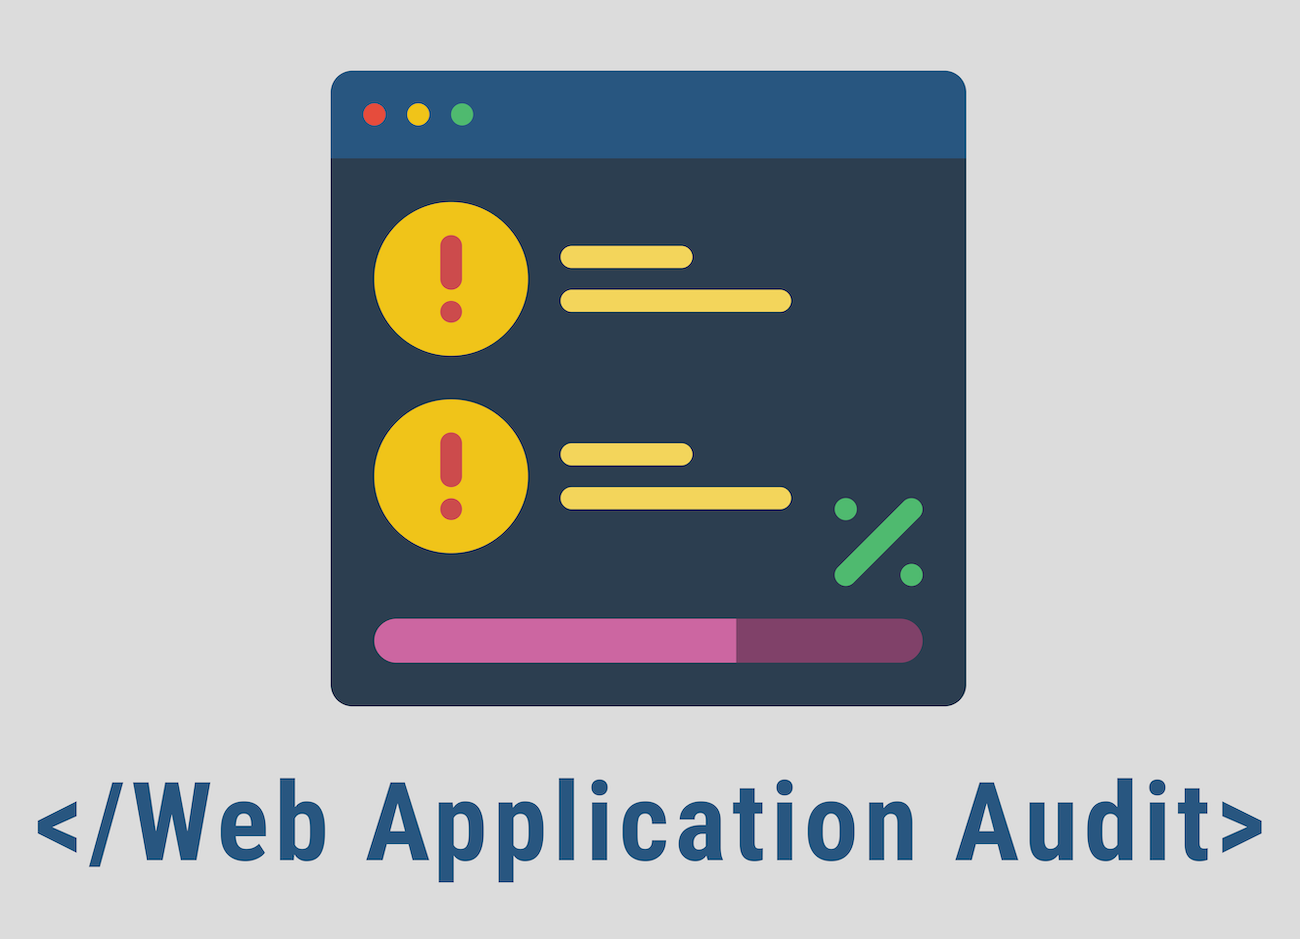 Web Application Audit